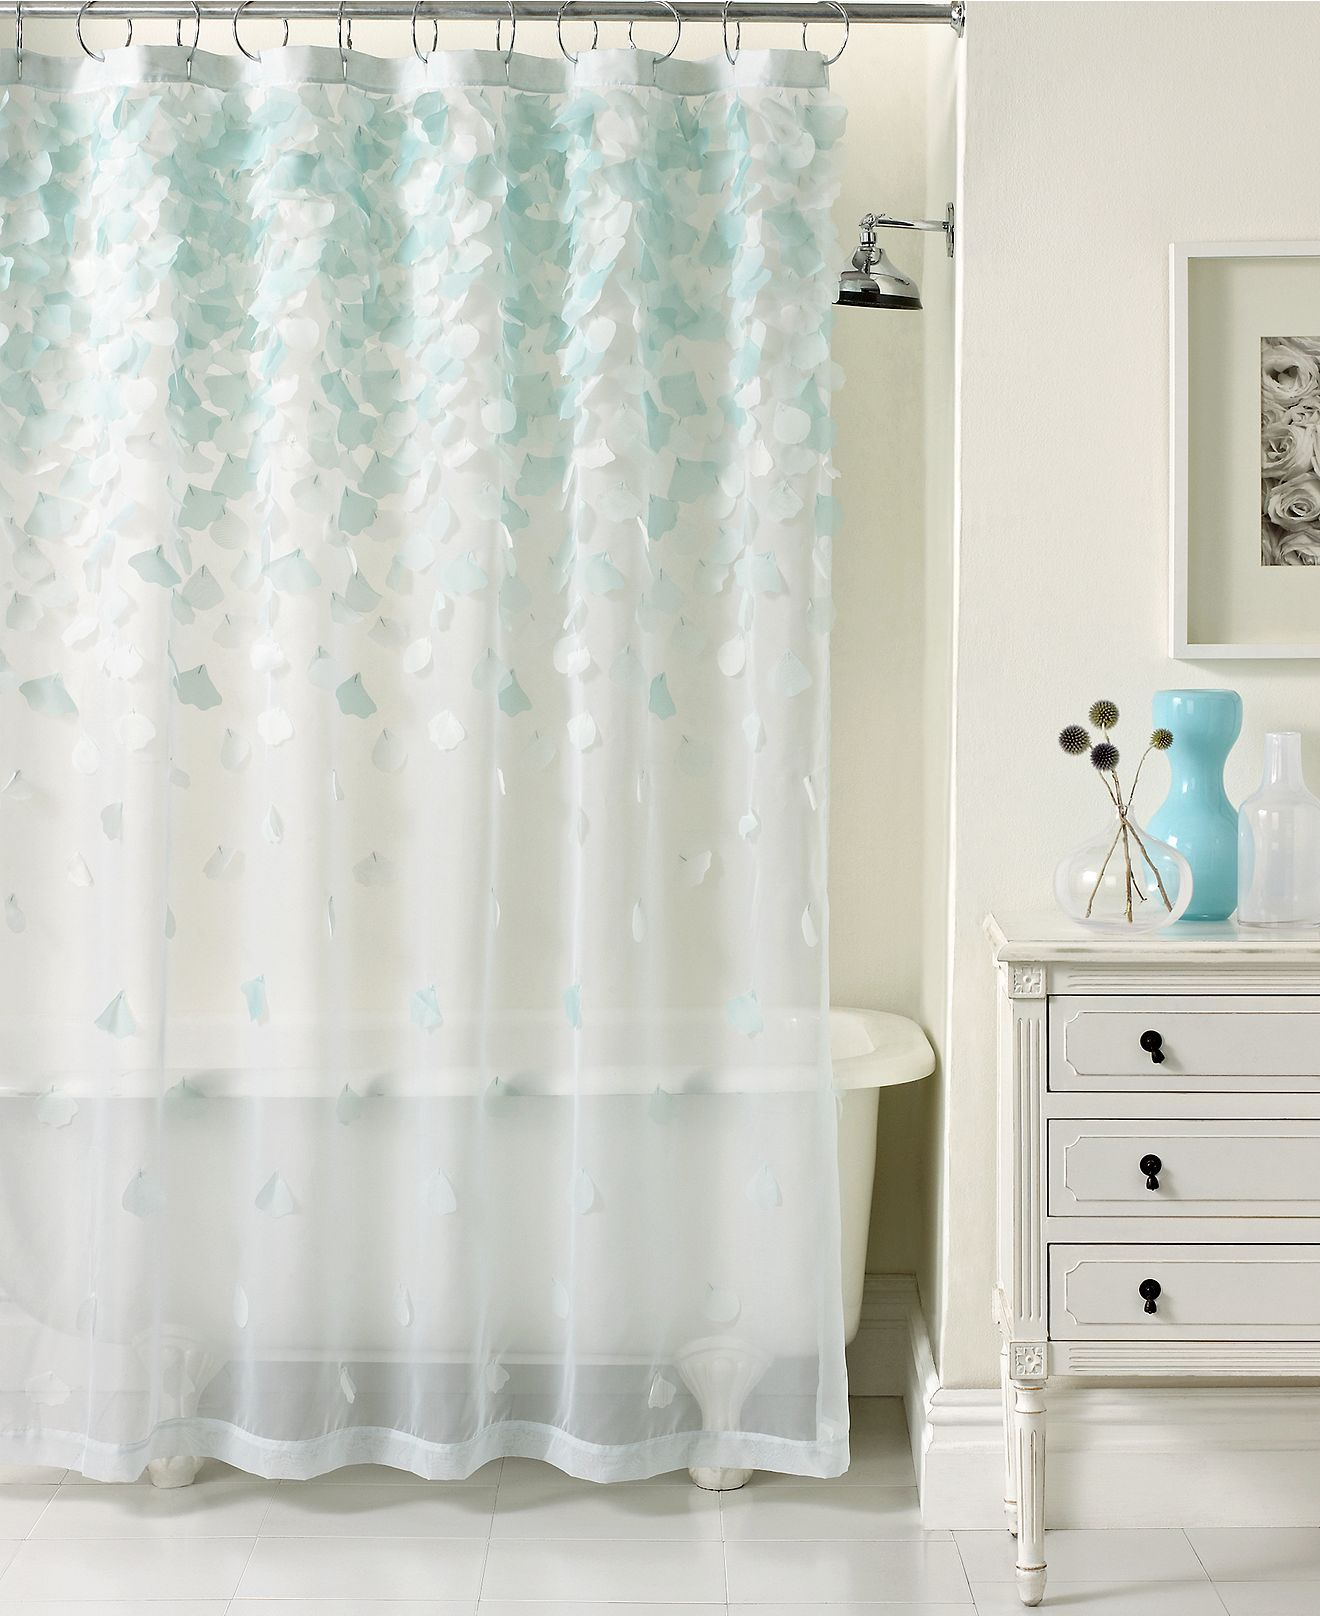 Fabric Shower Curtains Macy's Martha Stewart Collection Bath Falling Petals Shower Curtain